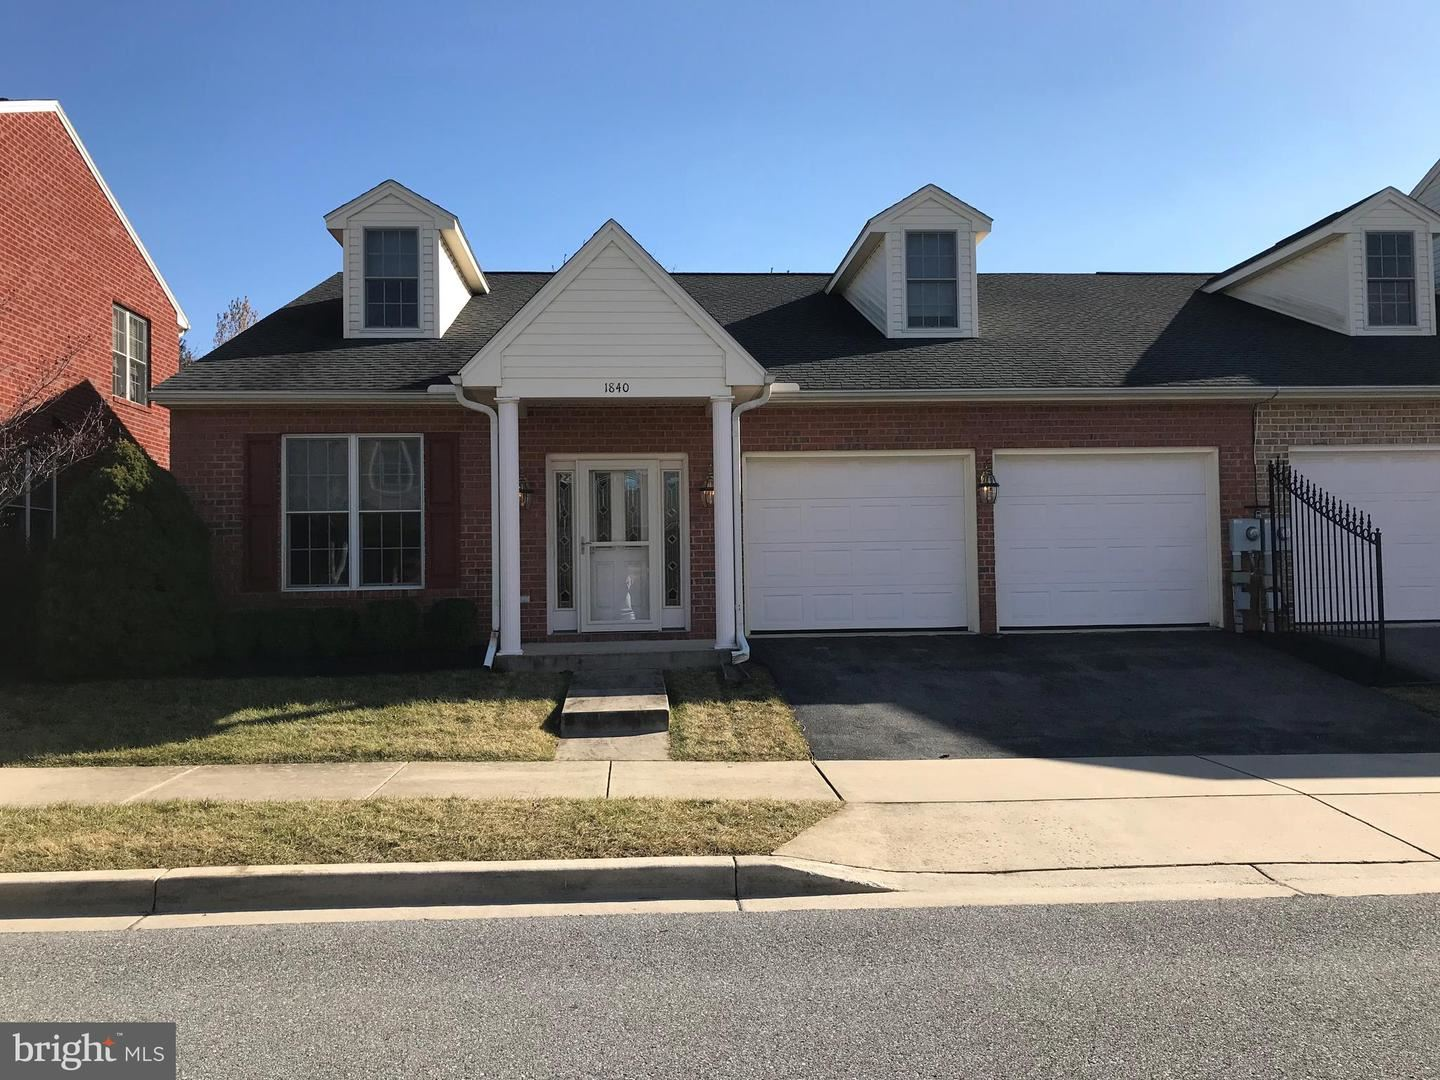 1840 MERIDIAN DR, Hagerstown, MD 21742 - #: MDWA170052